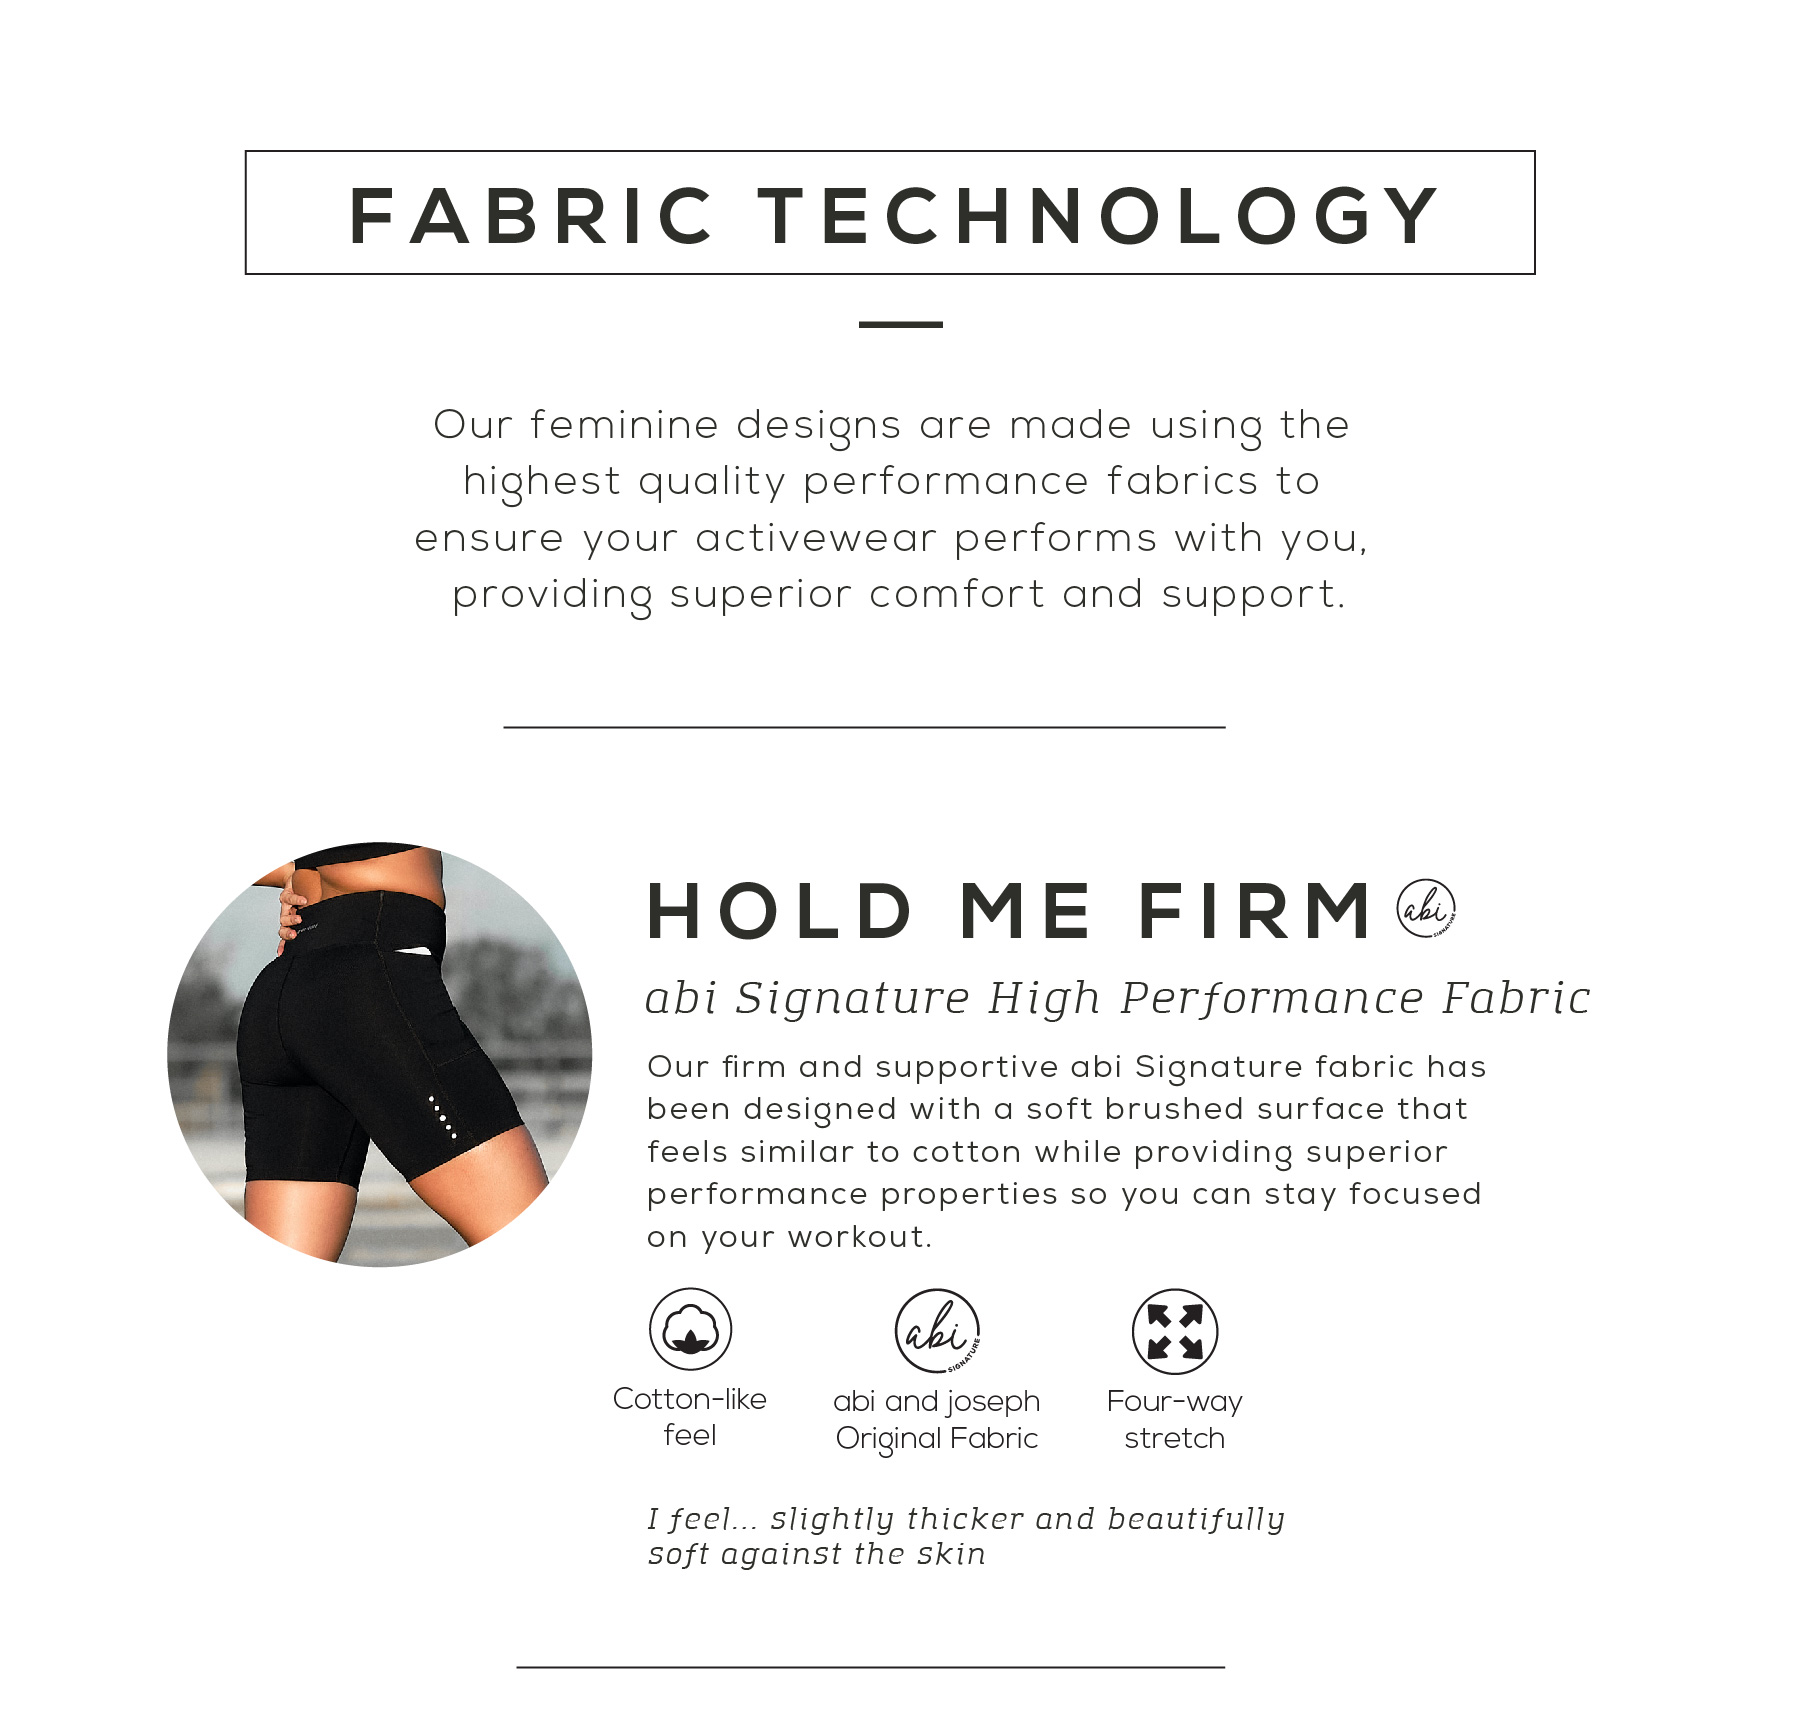 fabric-technology-tile-1.jpg